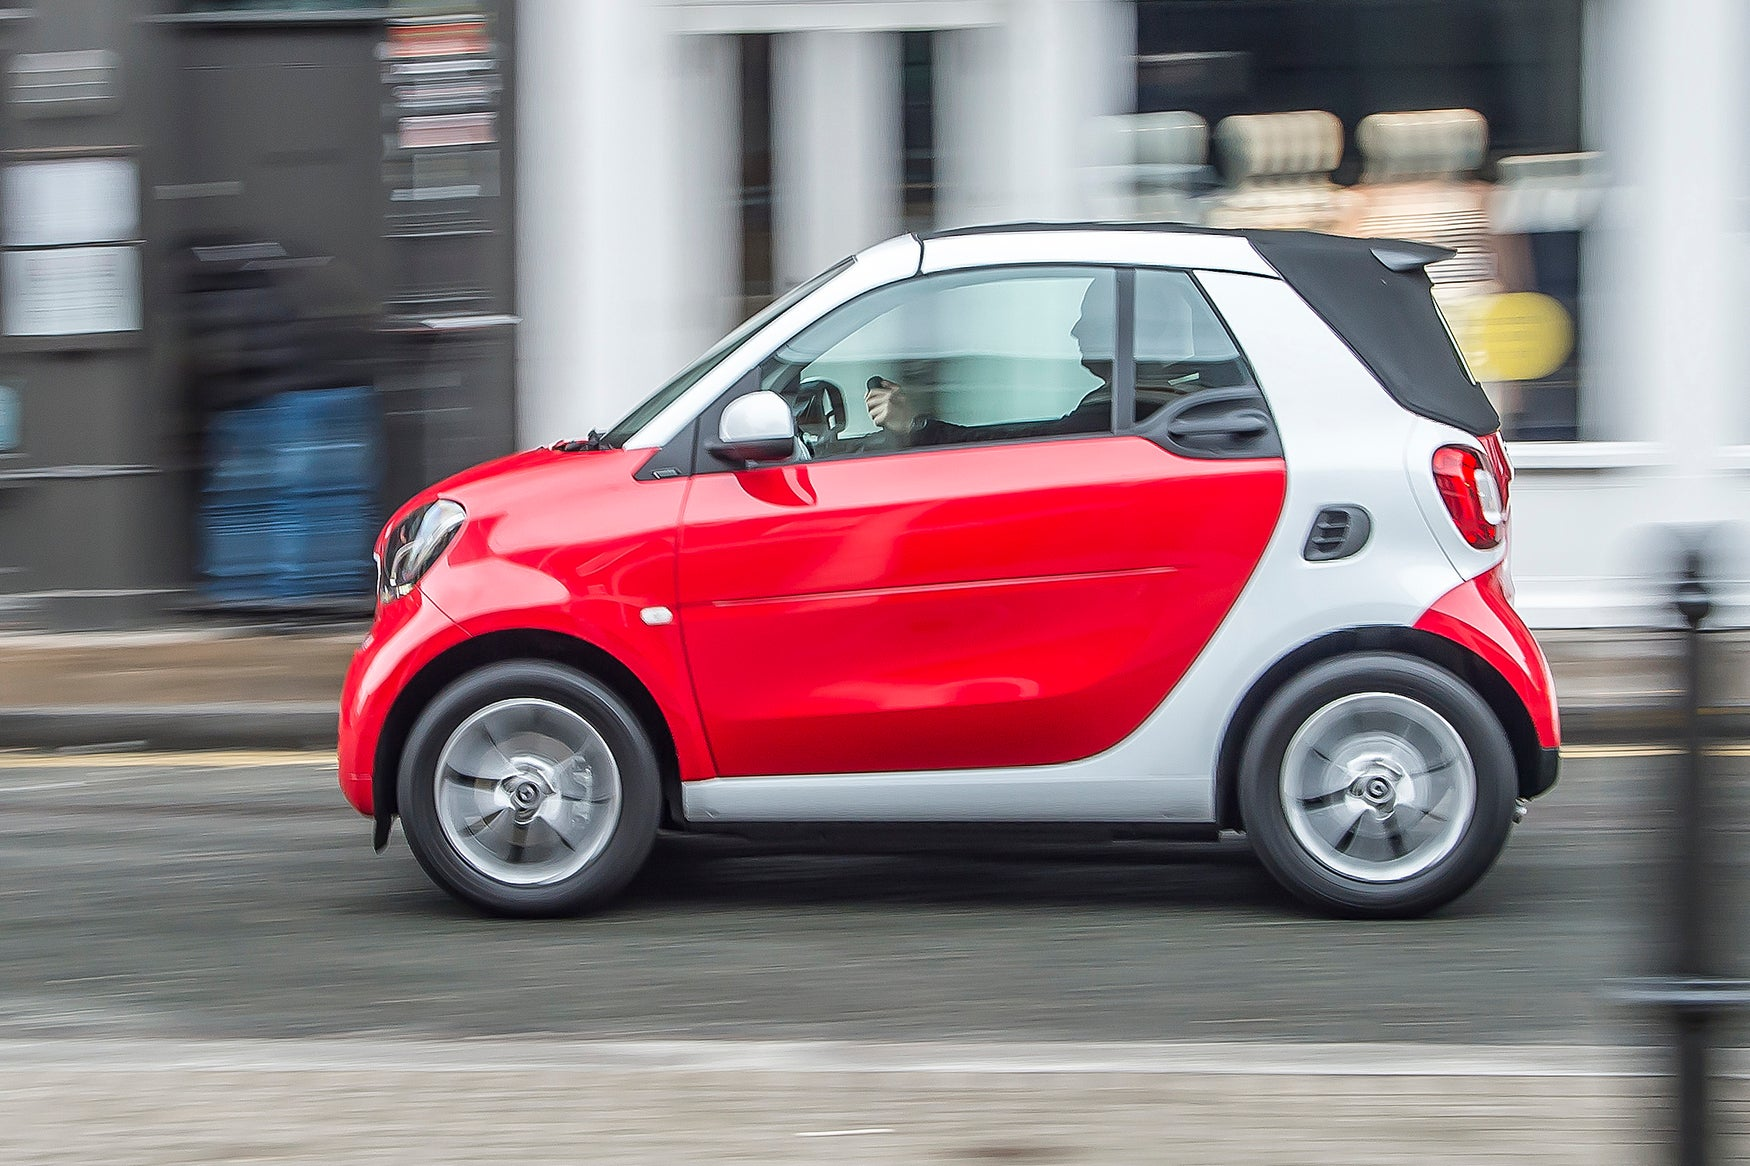 Smart Fortwo Cabriolet Left Side VIew